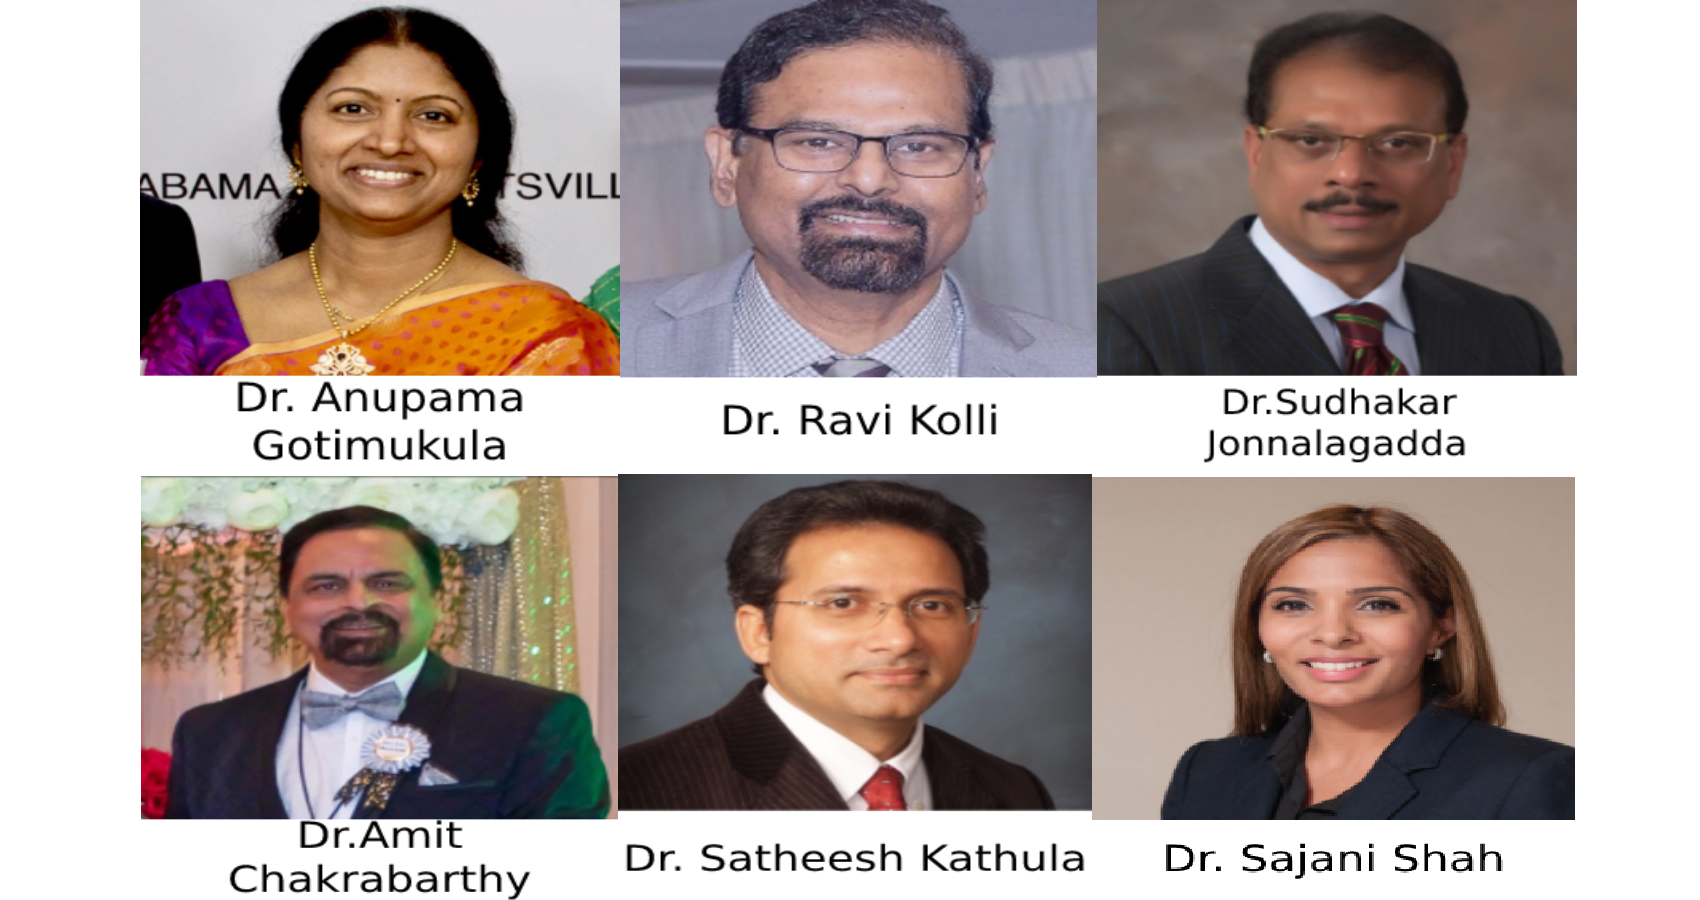 AAPI Begins Campaign For Medical Oxygen, Tele-Consult & Educational Webinars to Help Combat Covid -19 In India